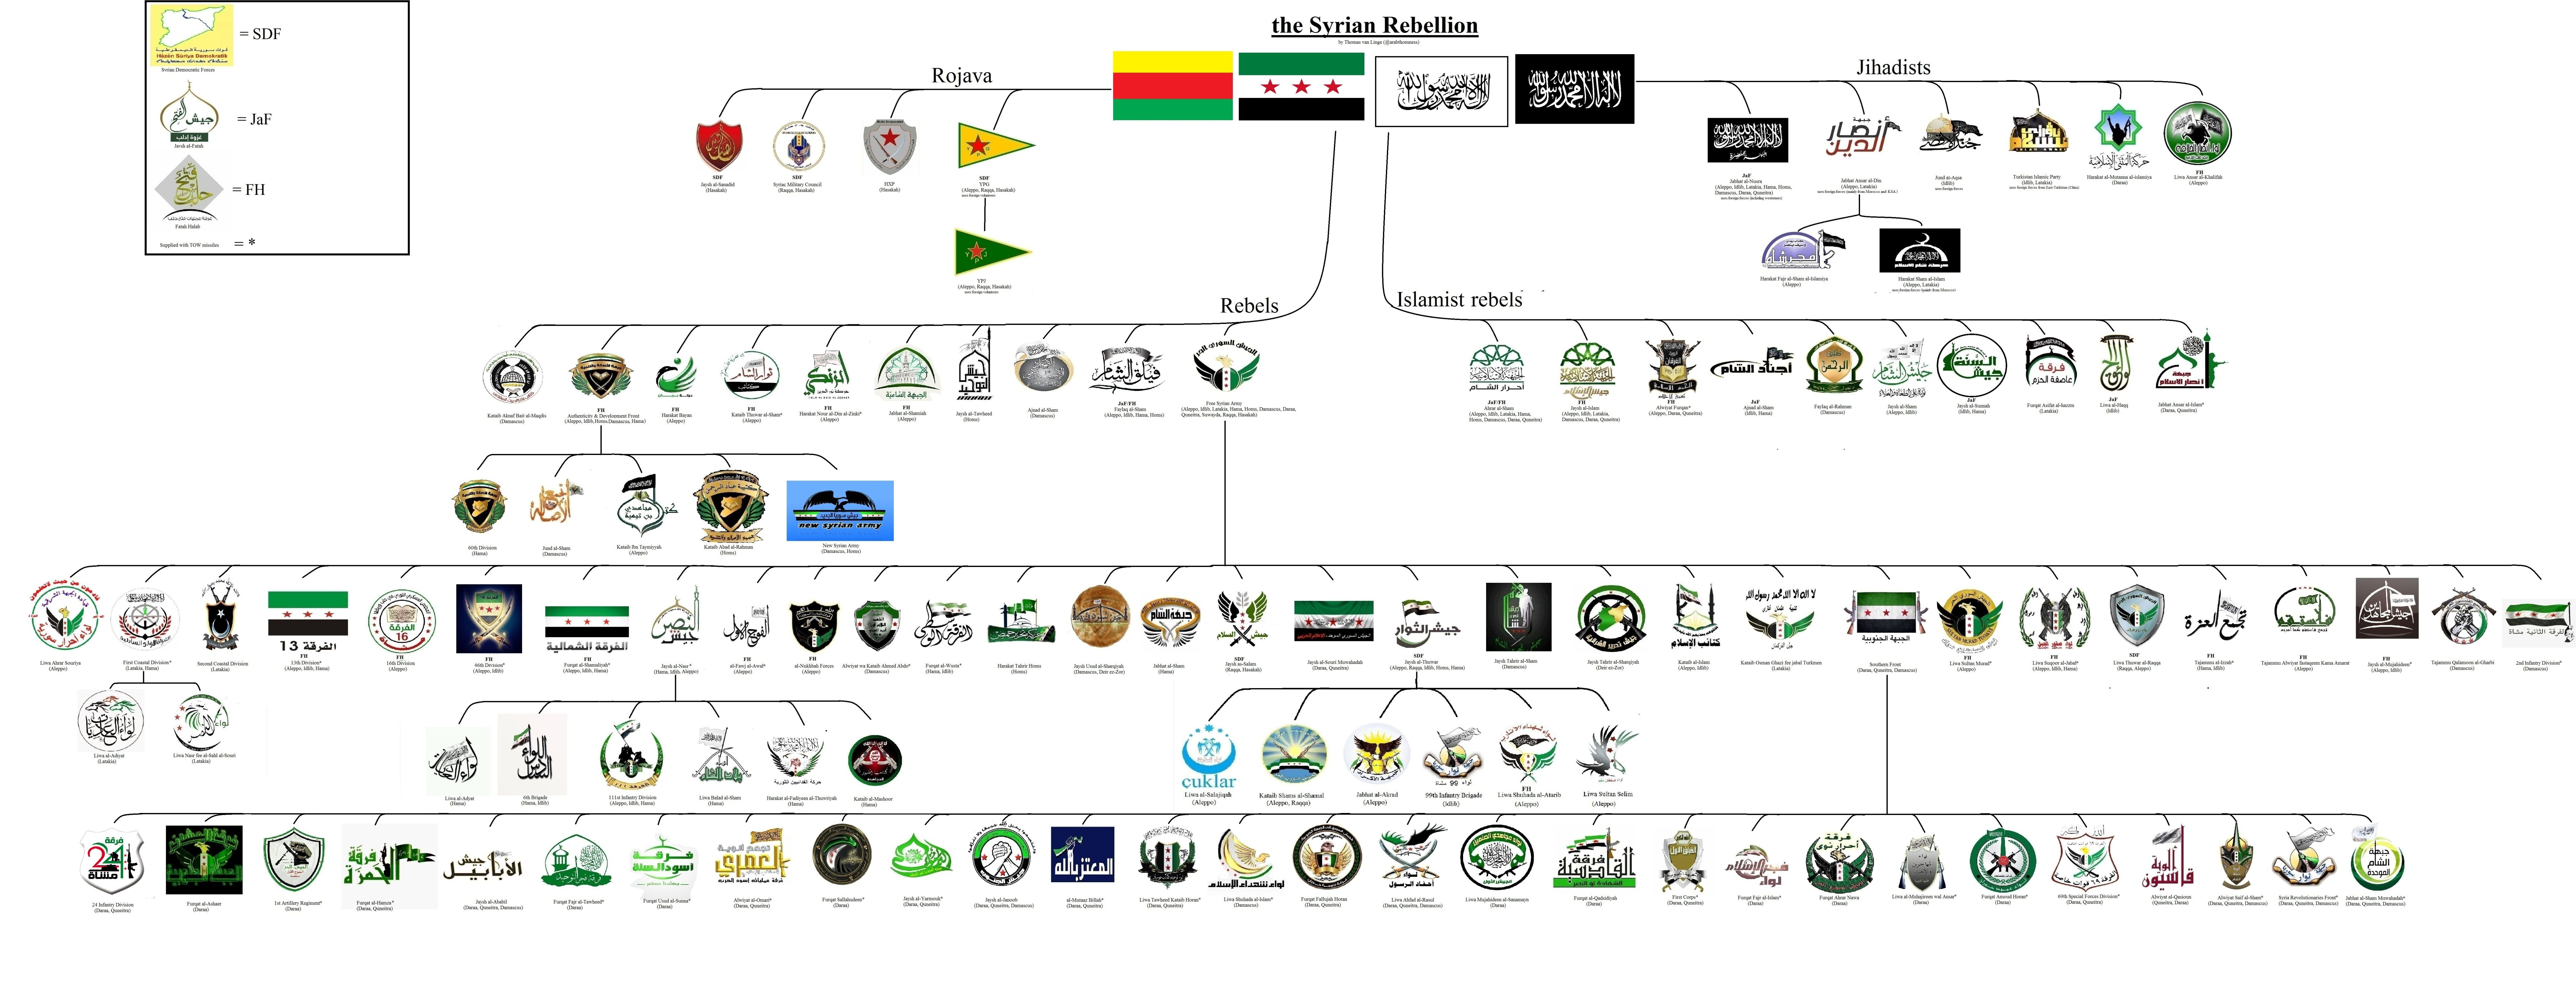 Thomas van Linge @arabthomness  #Syria INFOGRAPHIC: all the major armed groups of the Syrian rebellion & their dynamics.